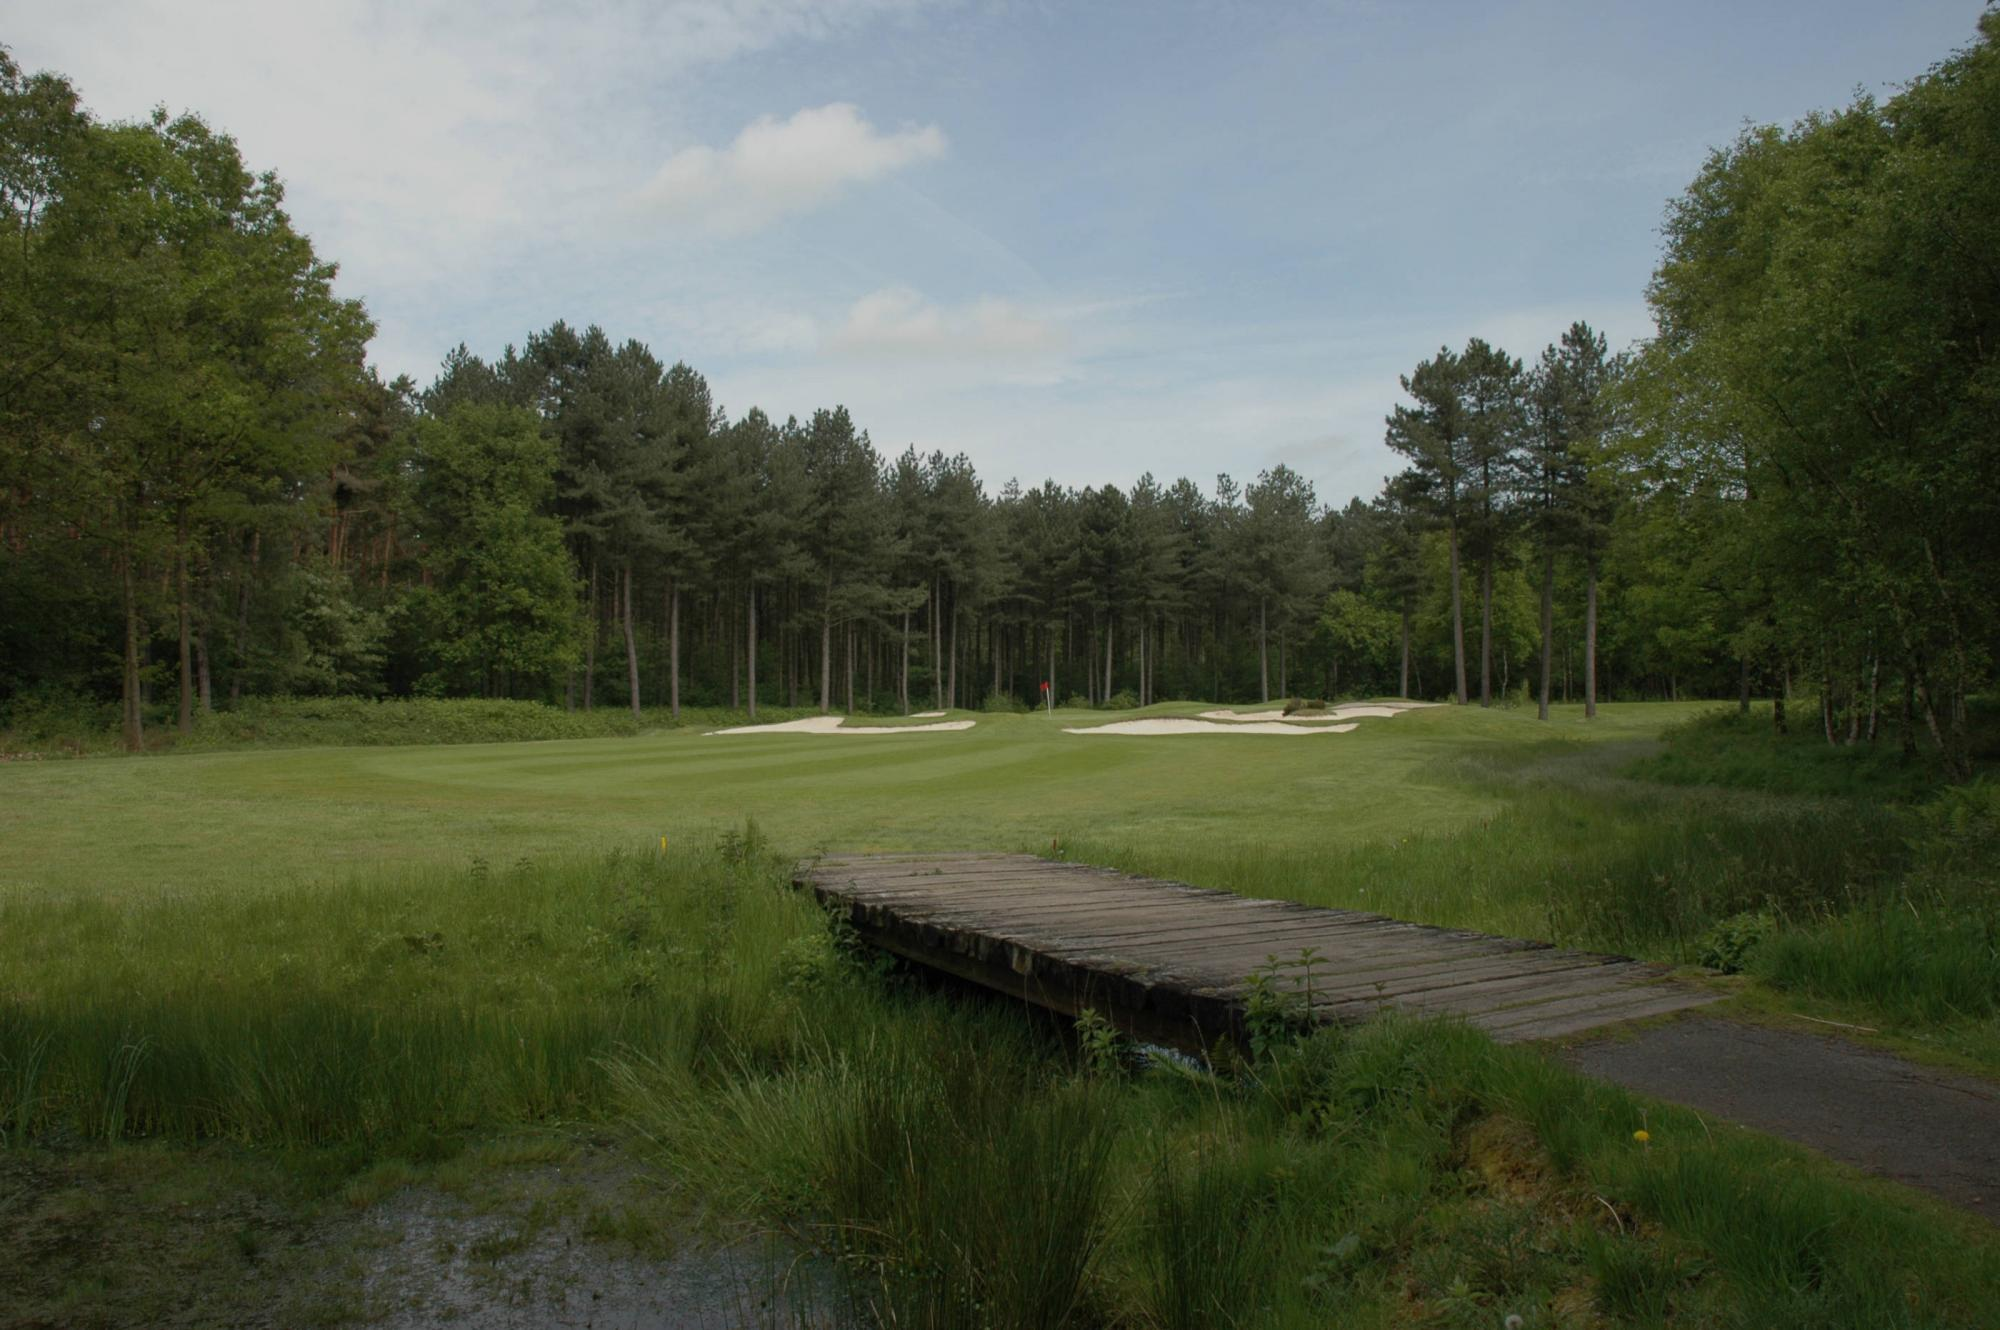 Royal Golf Club du Hainaut has several of the most popular golf course near Brussels Waterloo & Mons